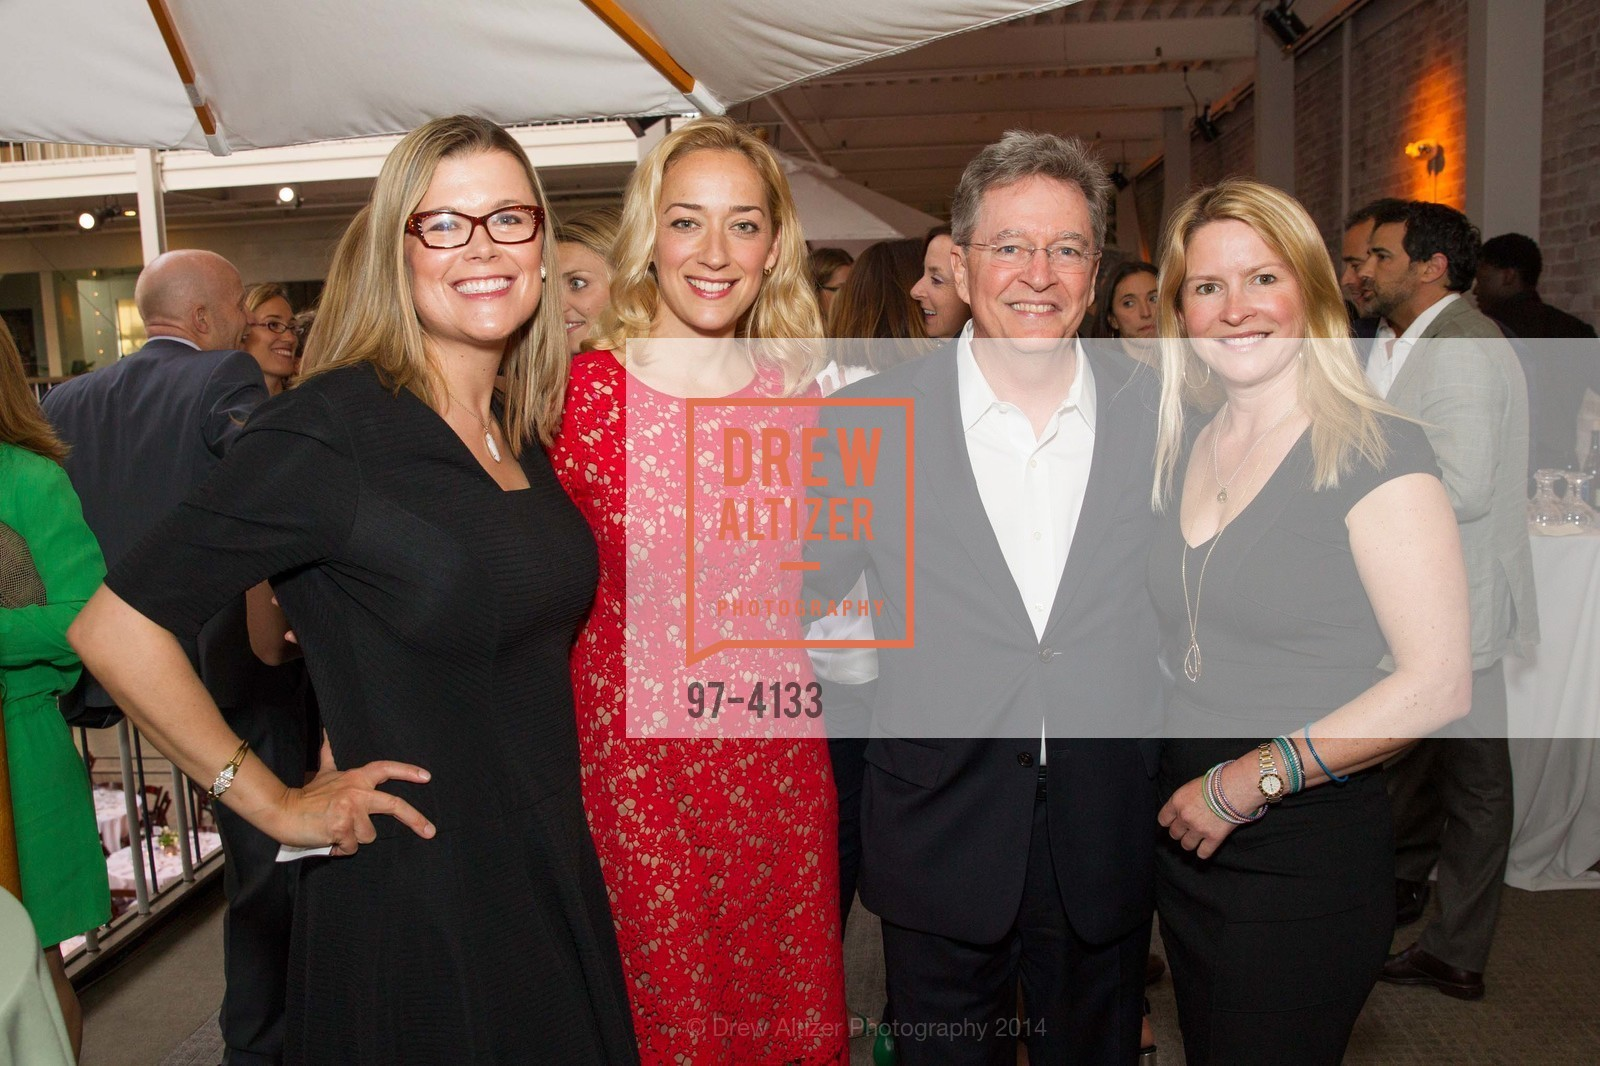 Heather White, Chris Connor, Ken Cook, Gabrielle Hull, Photo #97-4133